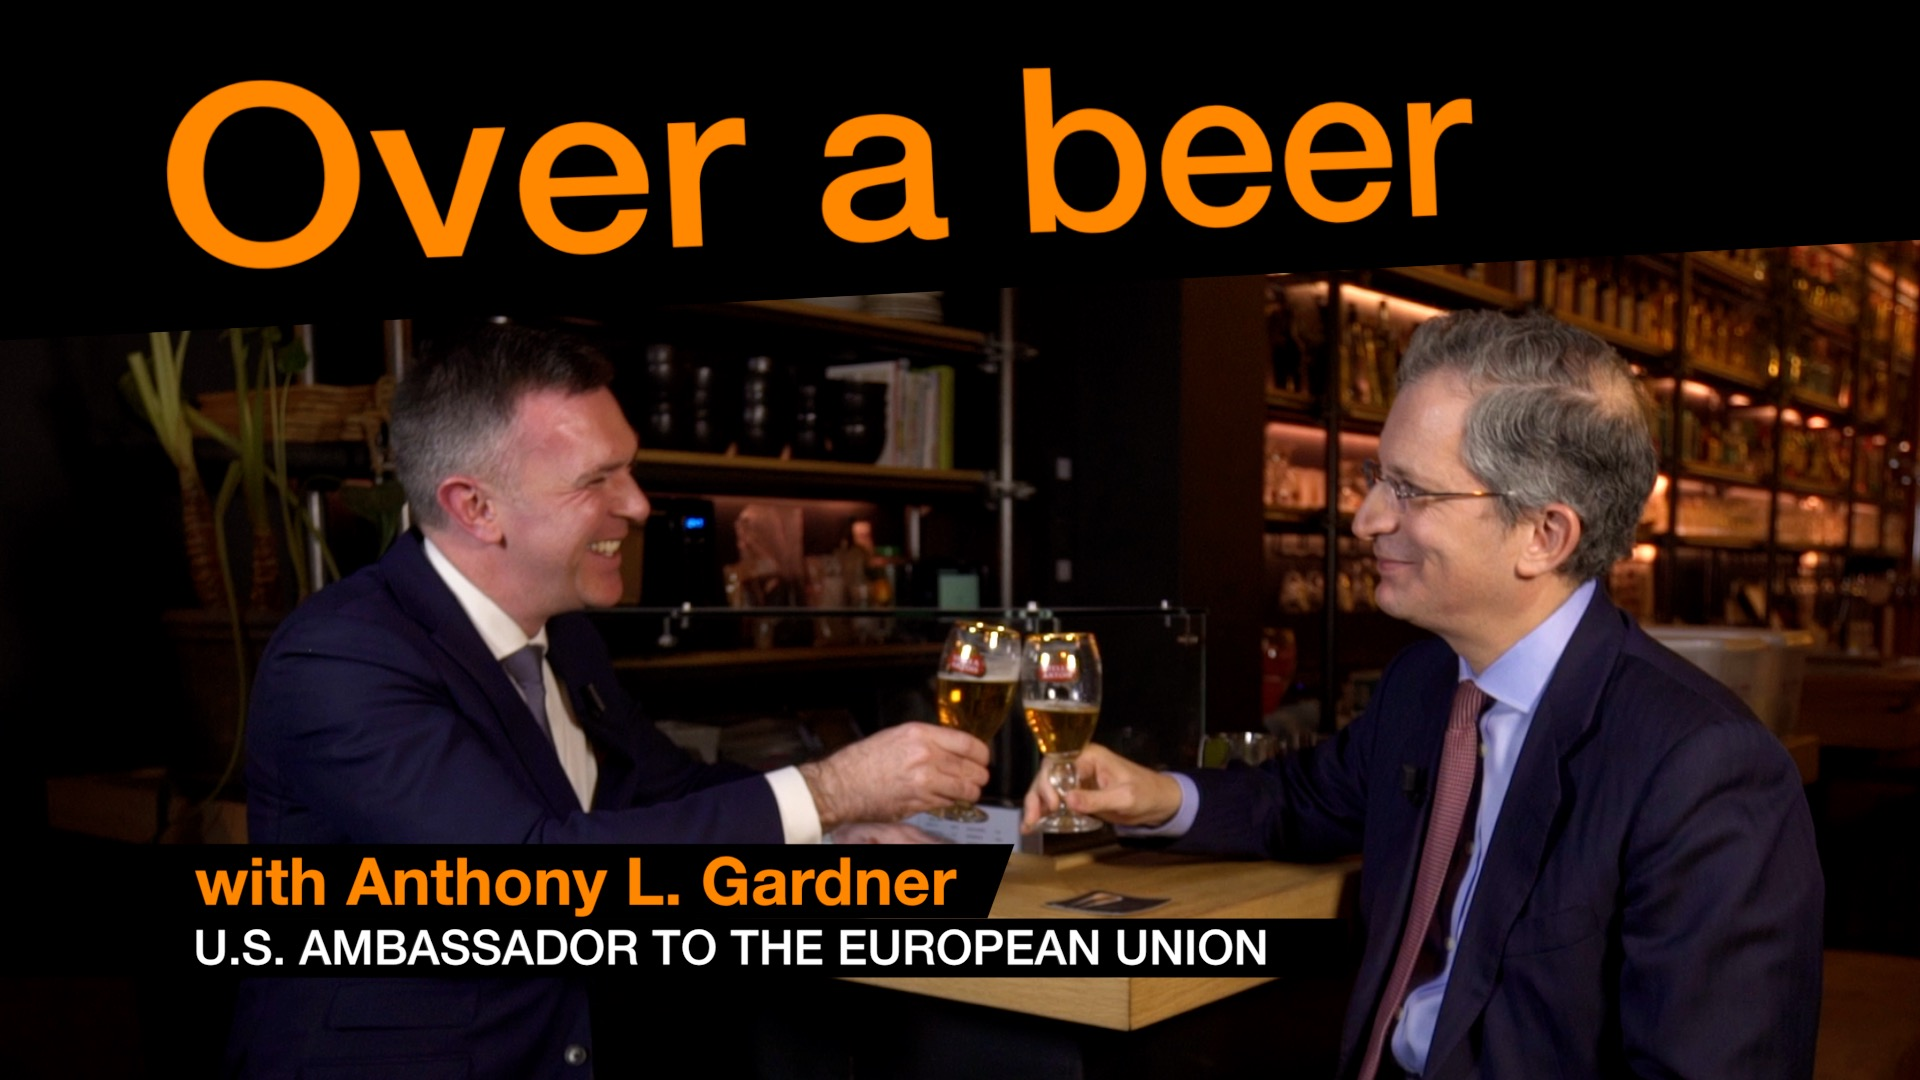 Anthony Gardner Over a beer